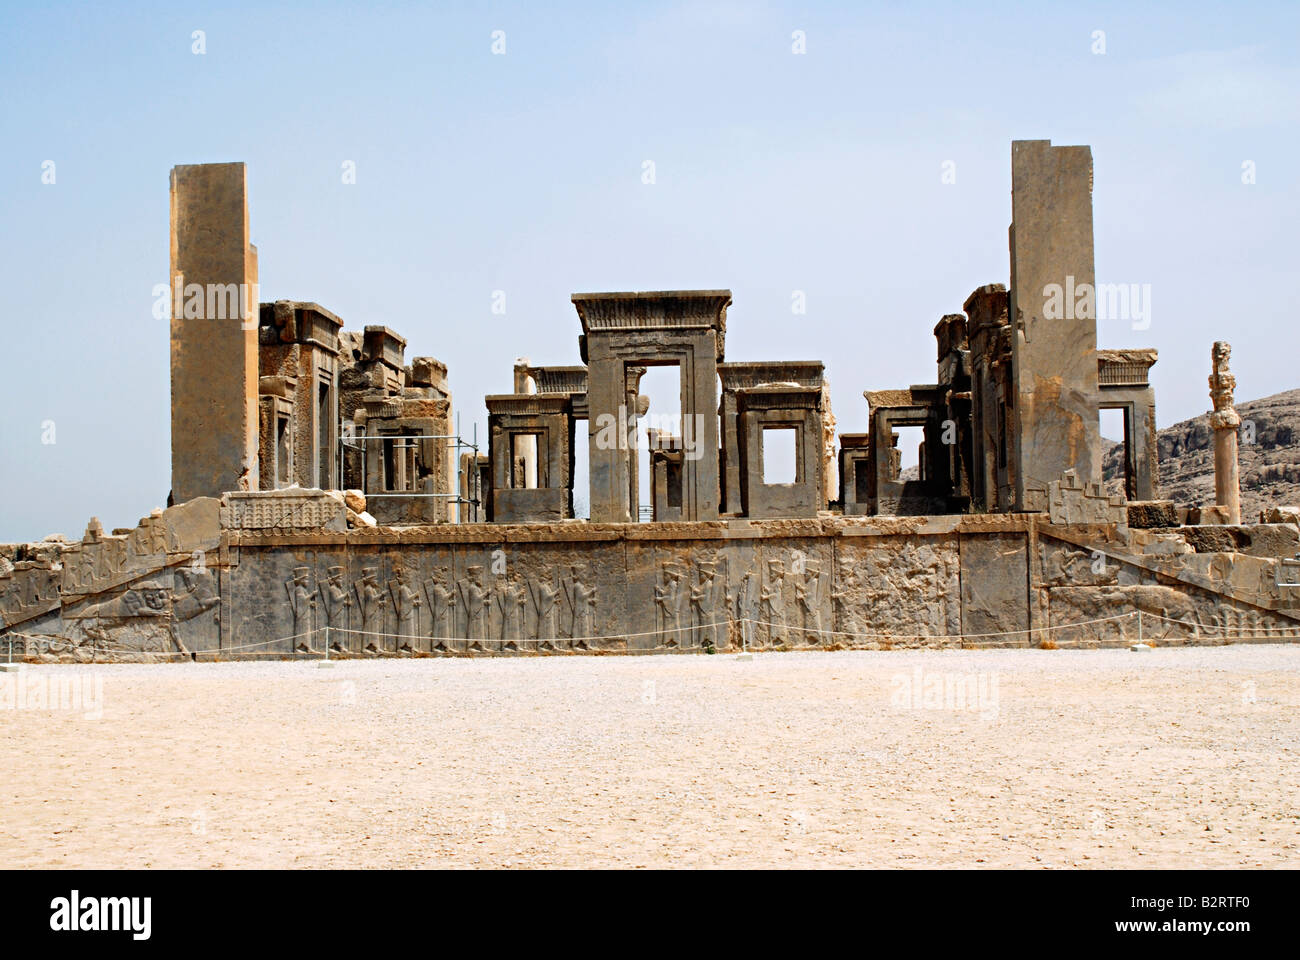 Iran Persepolis Remains Of Palace Complex With Warriors On Plinth Stock Photo Alamy